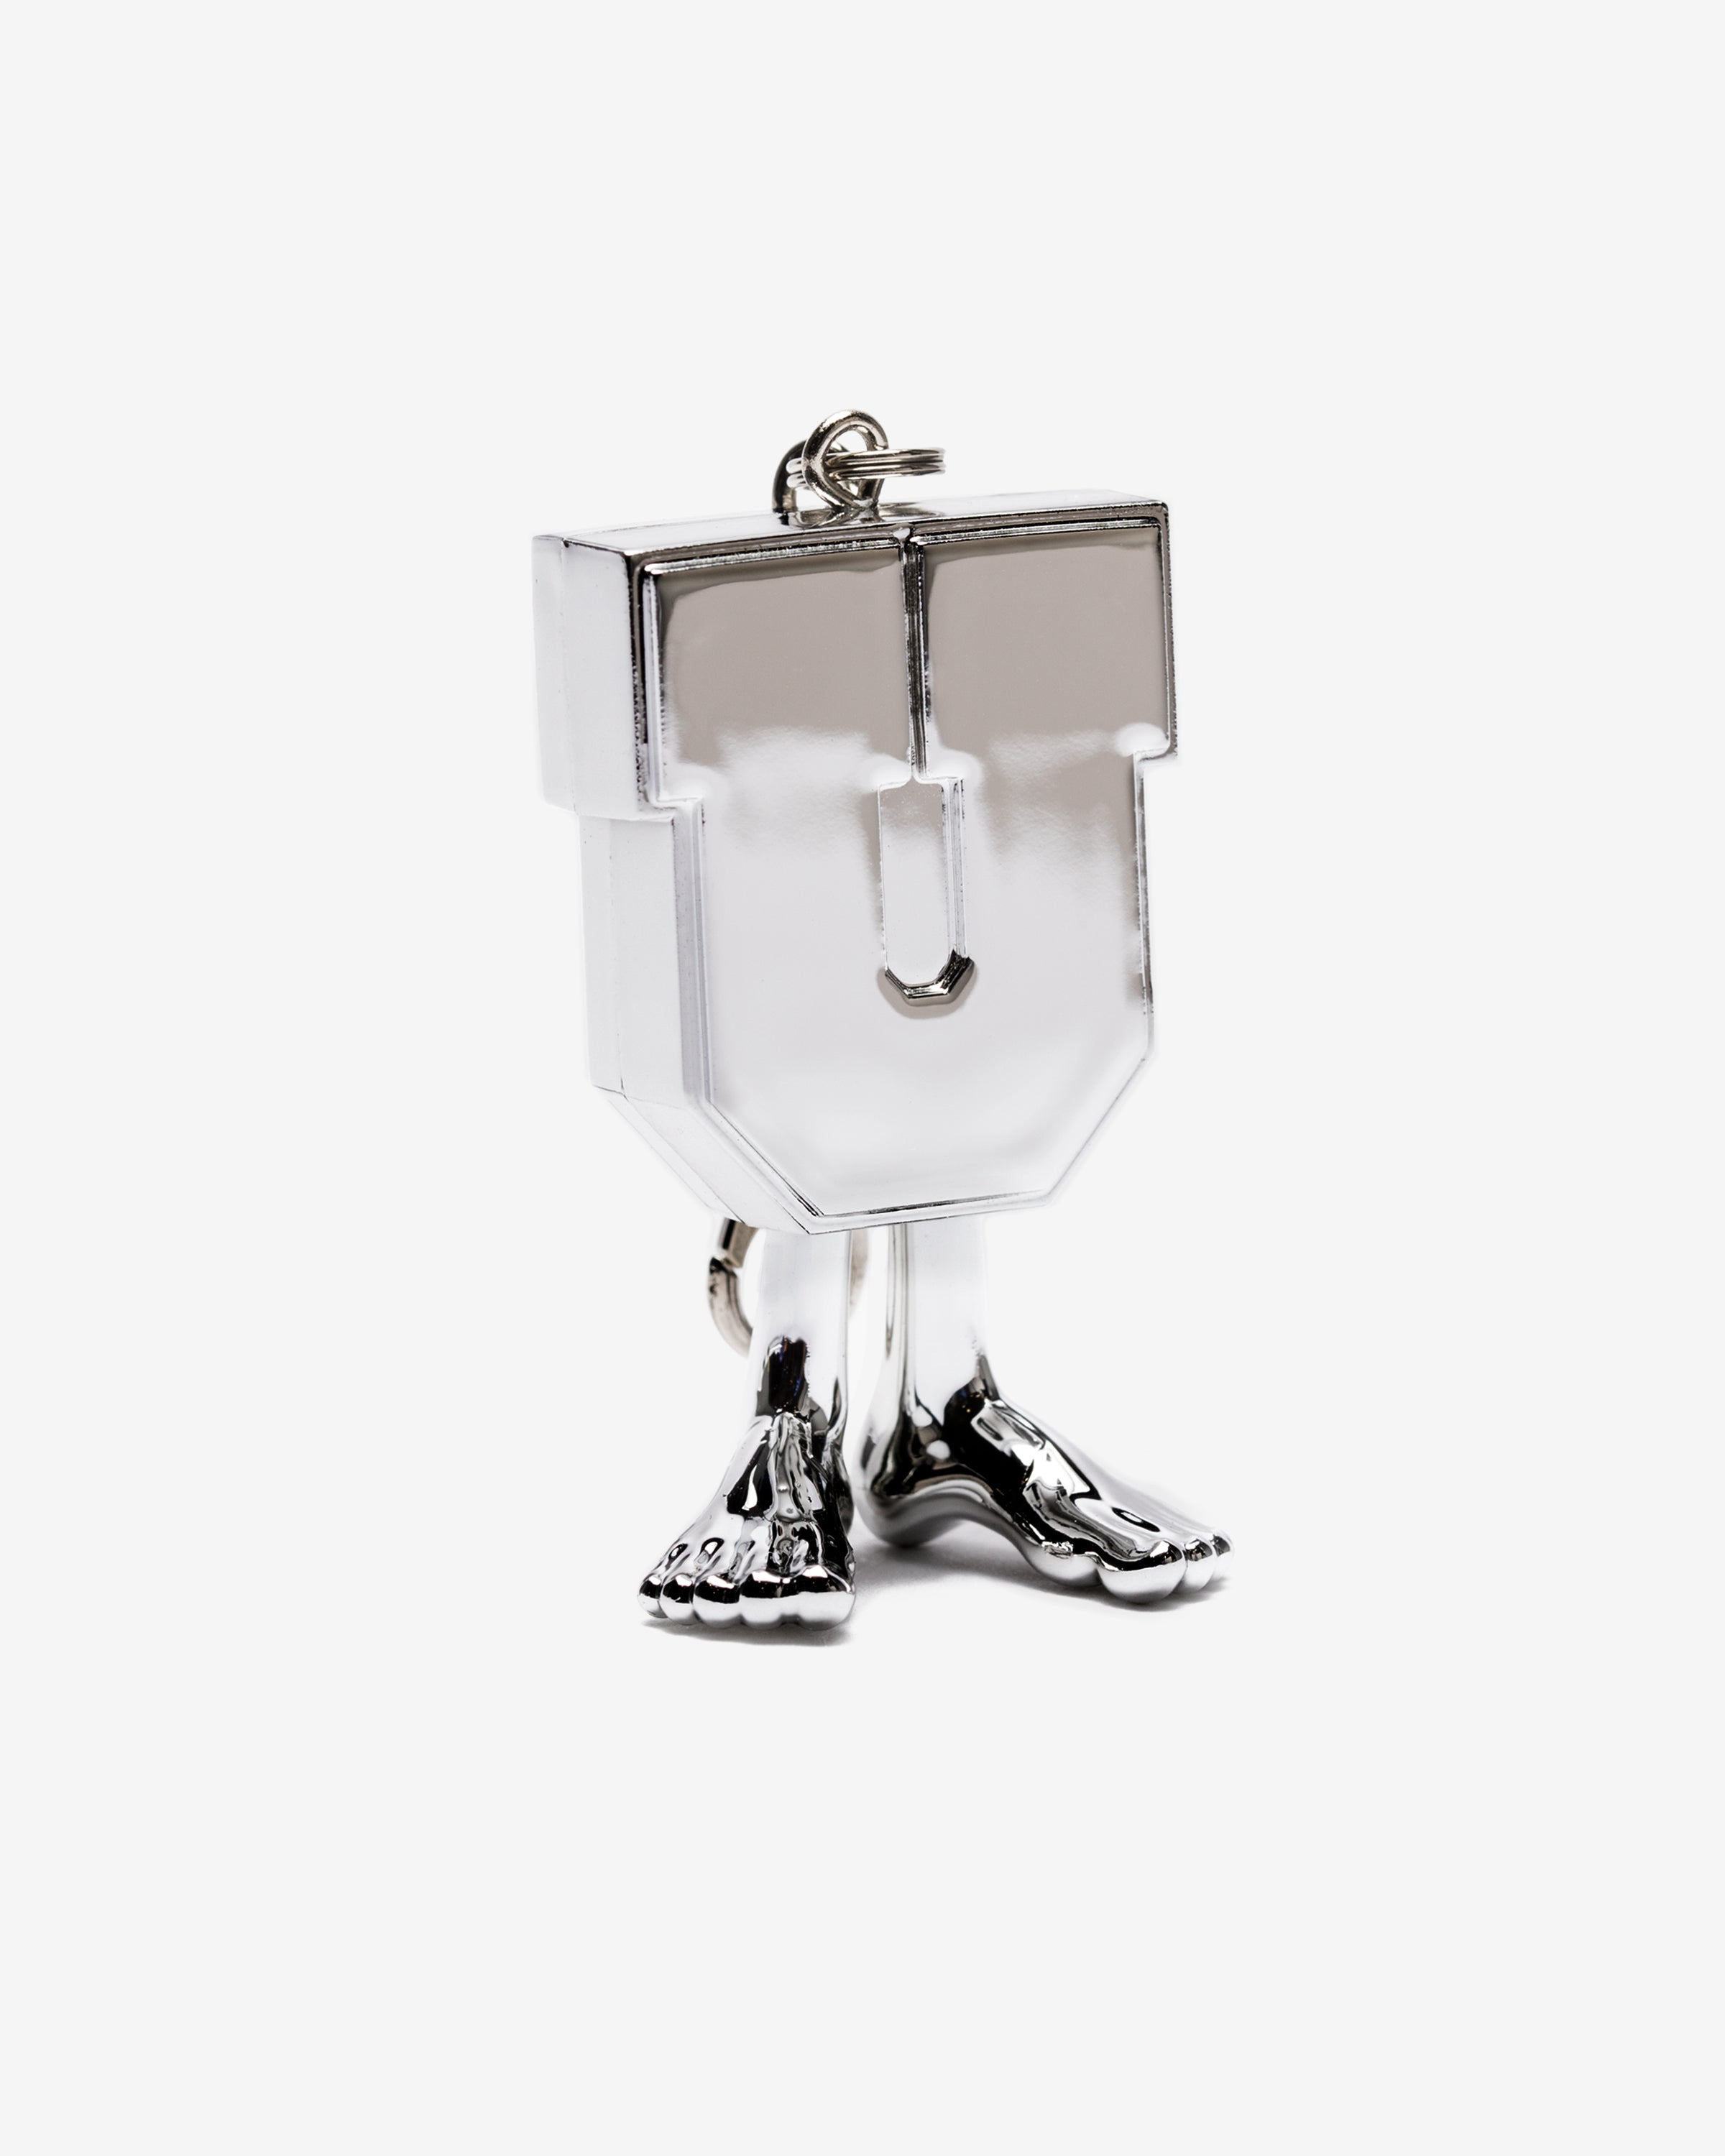 UNDEFEATED X MEDICOM UMAN KEYCHAIN - CHROME